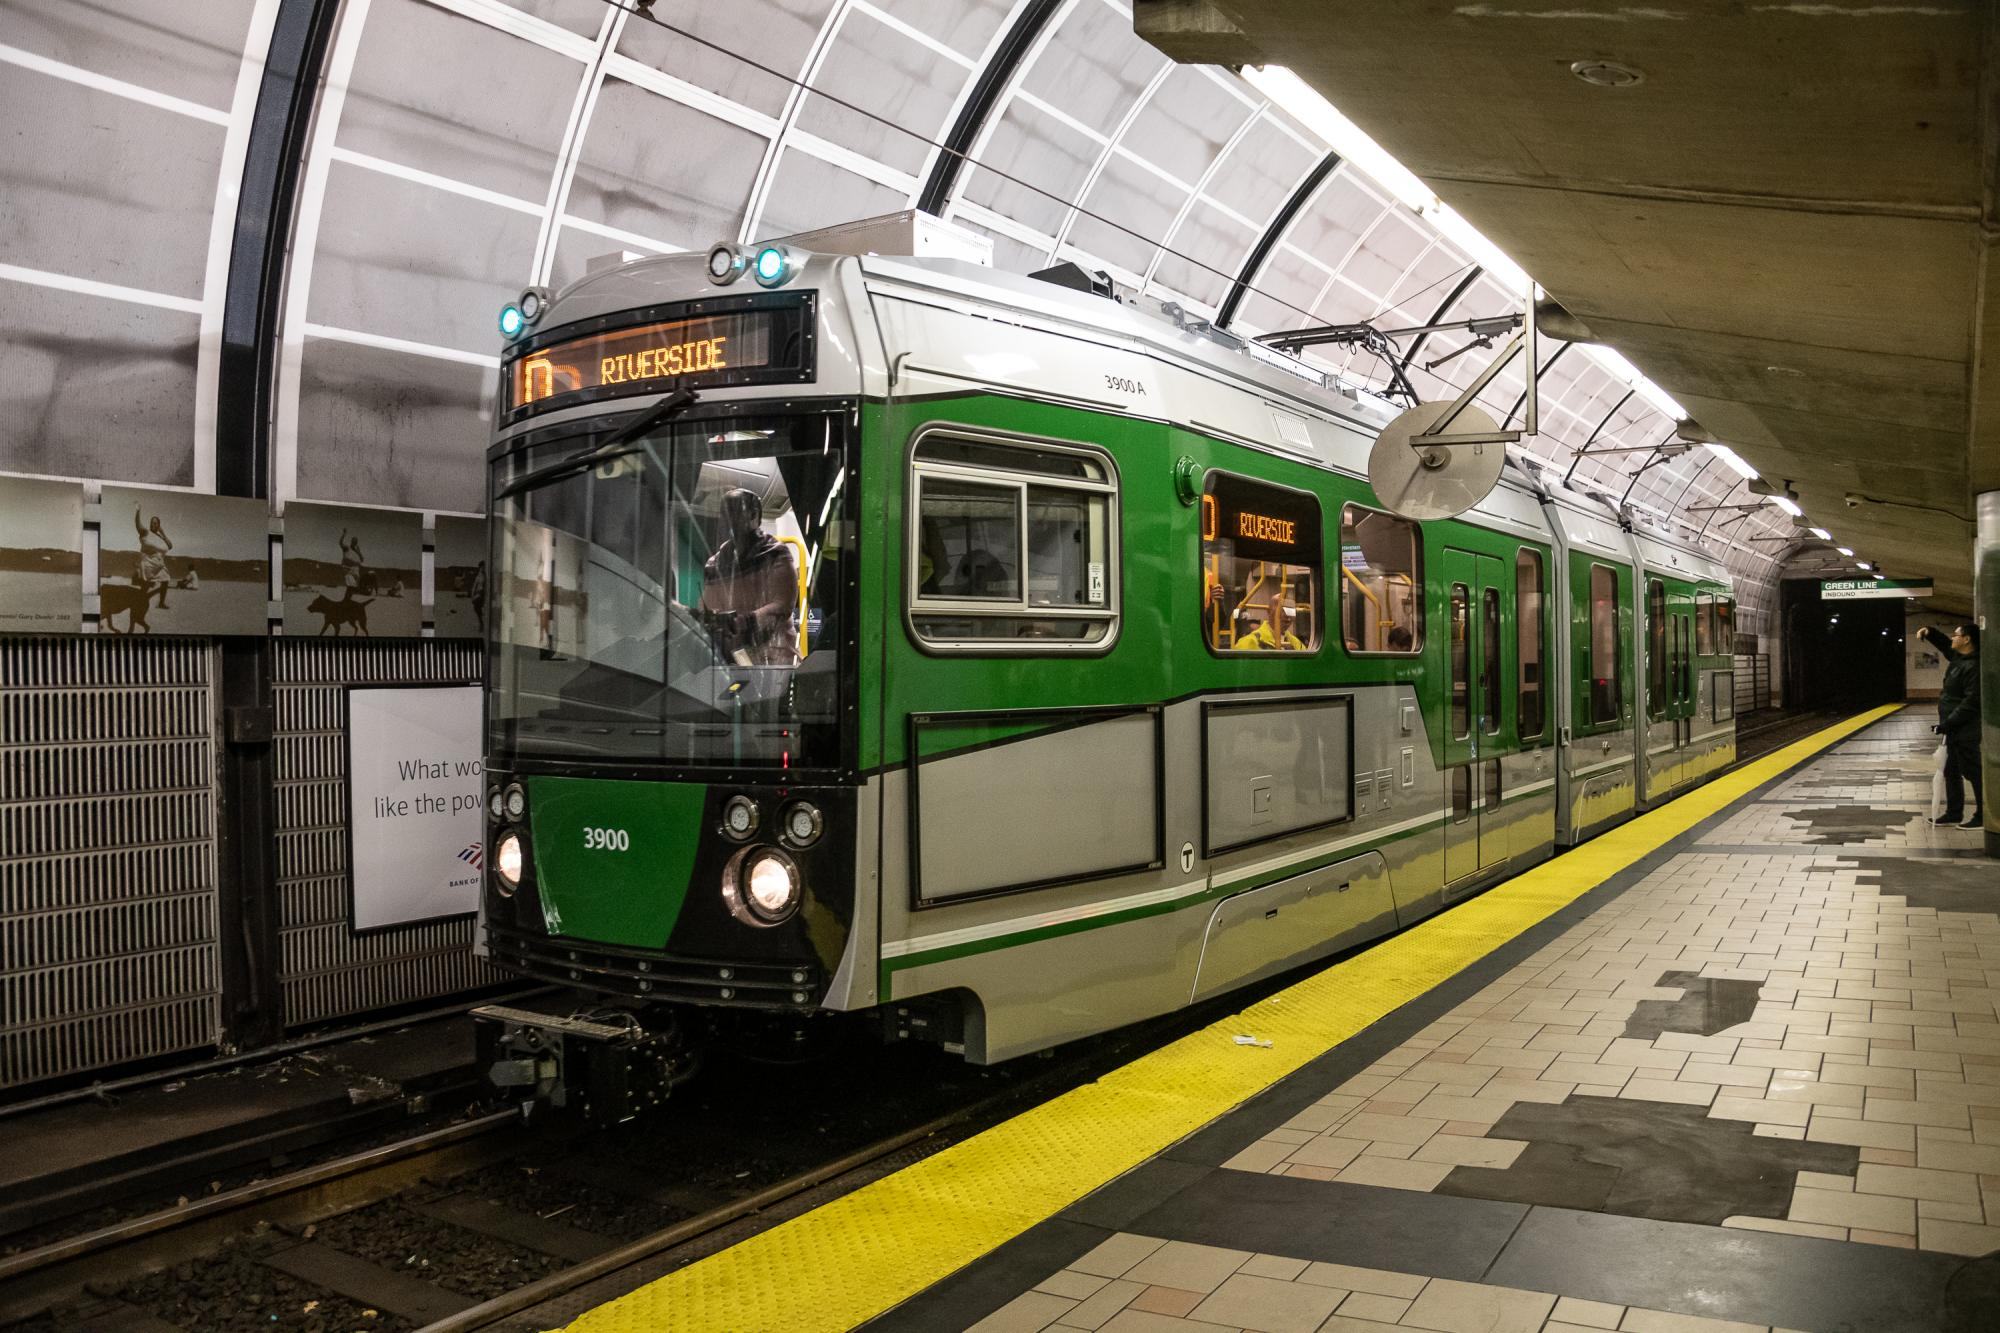 The first of 24 new Green Line vehicles went into regular service on December 21, 2018. The vehicle is pictured here at North Station.